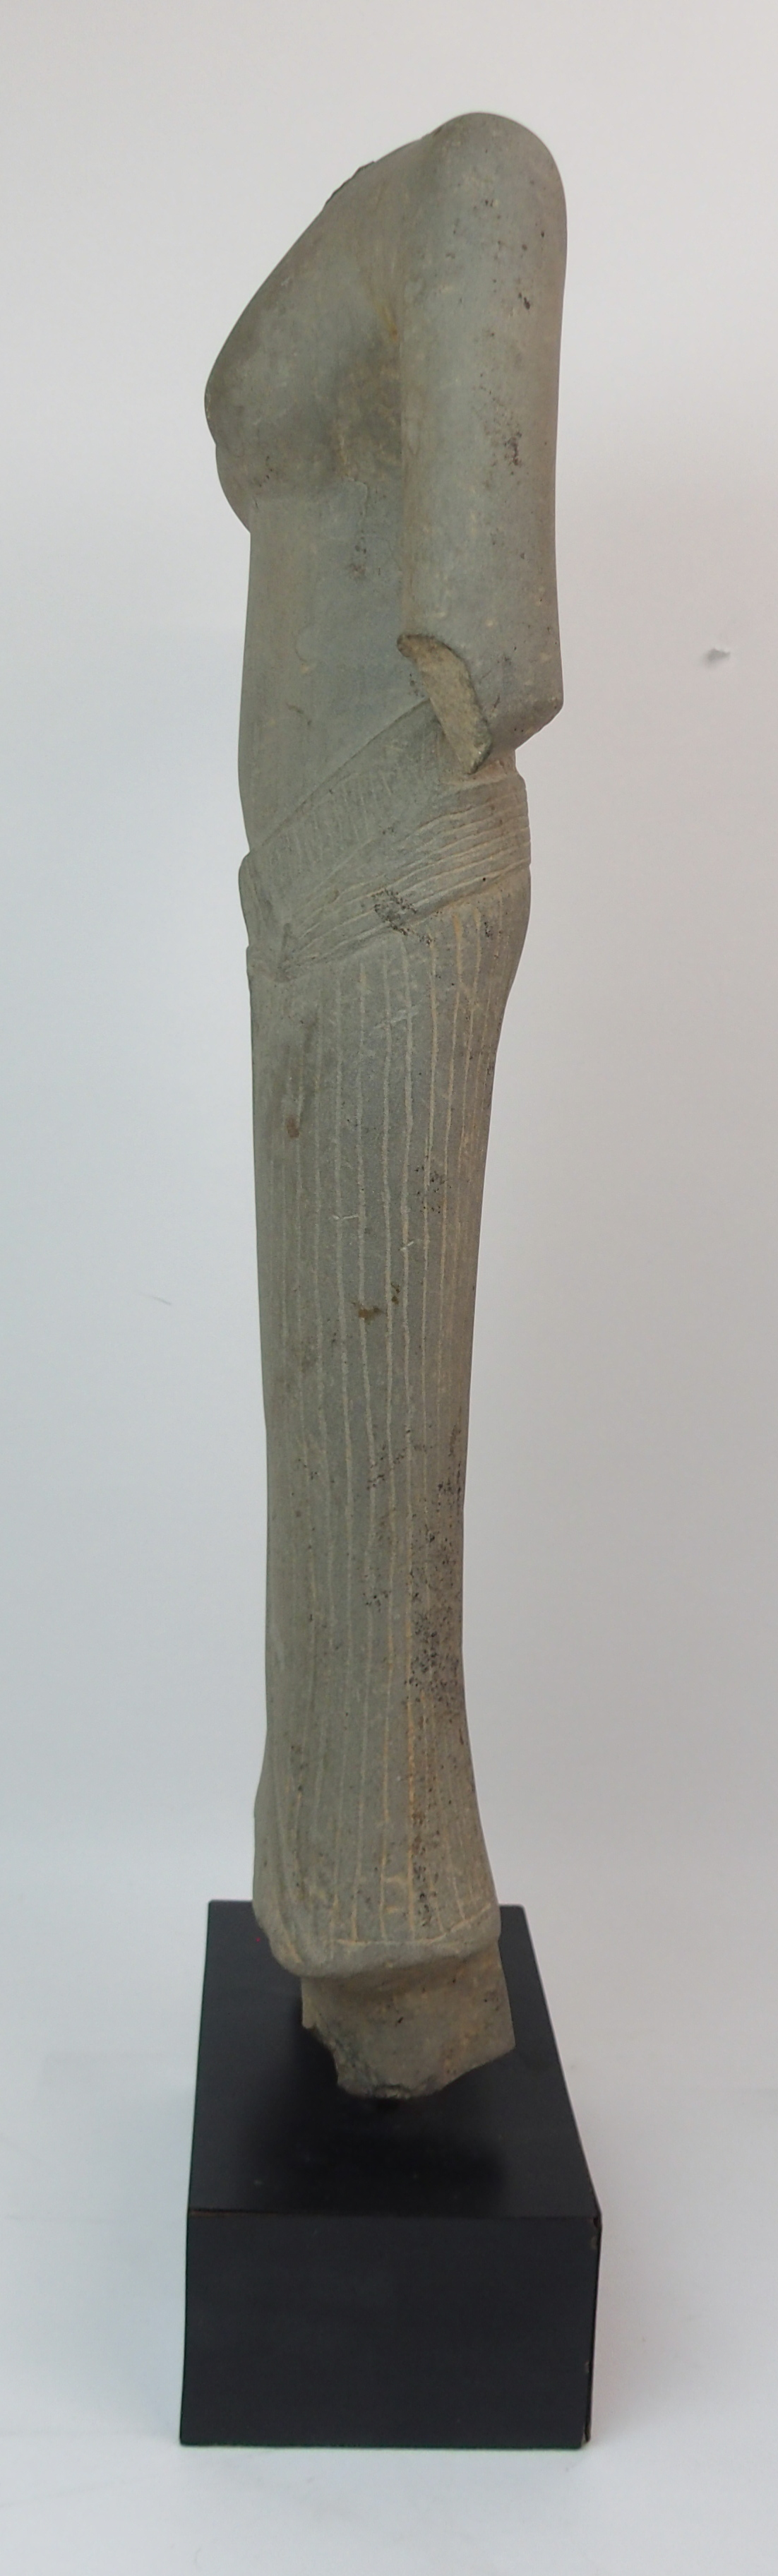 Lot 45 - AN ASIAN STONE CARVING OF A FEMALE TORSO bare chested and wearing a ribbon tied patterned dress, (